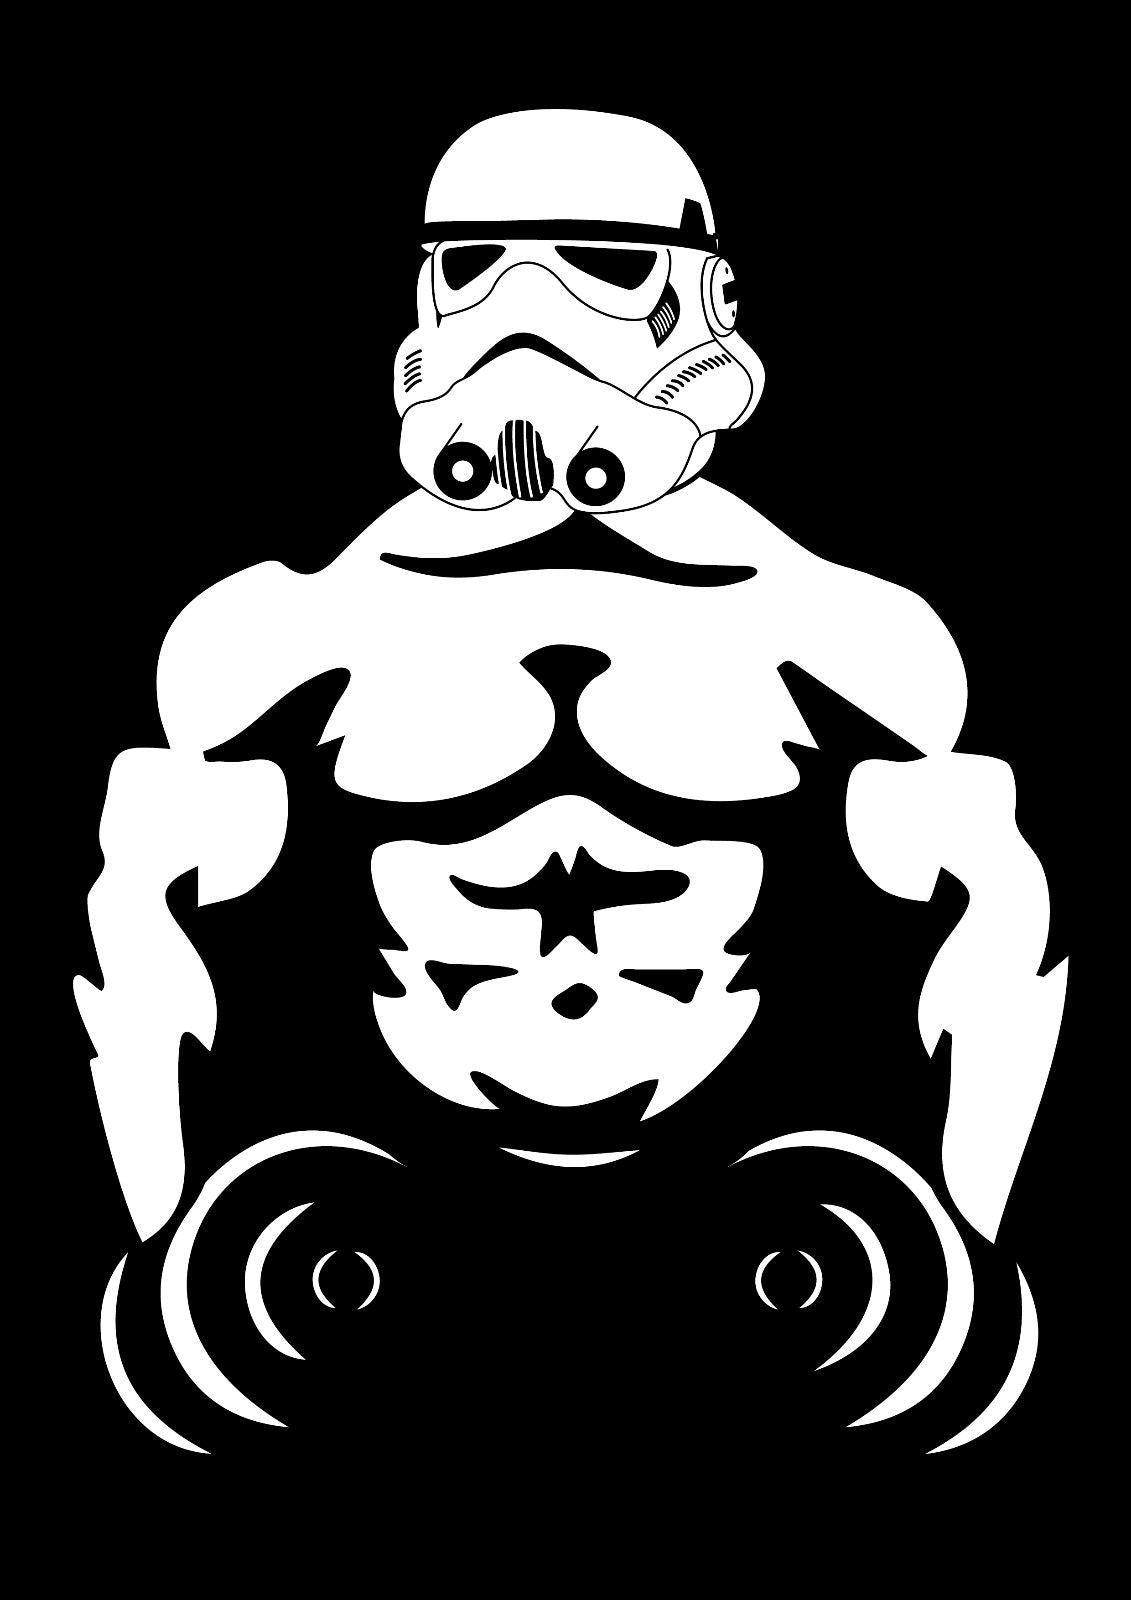 Storm trooper lifiting